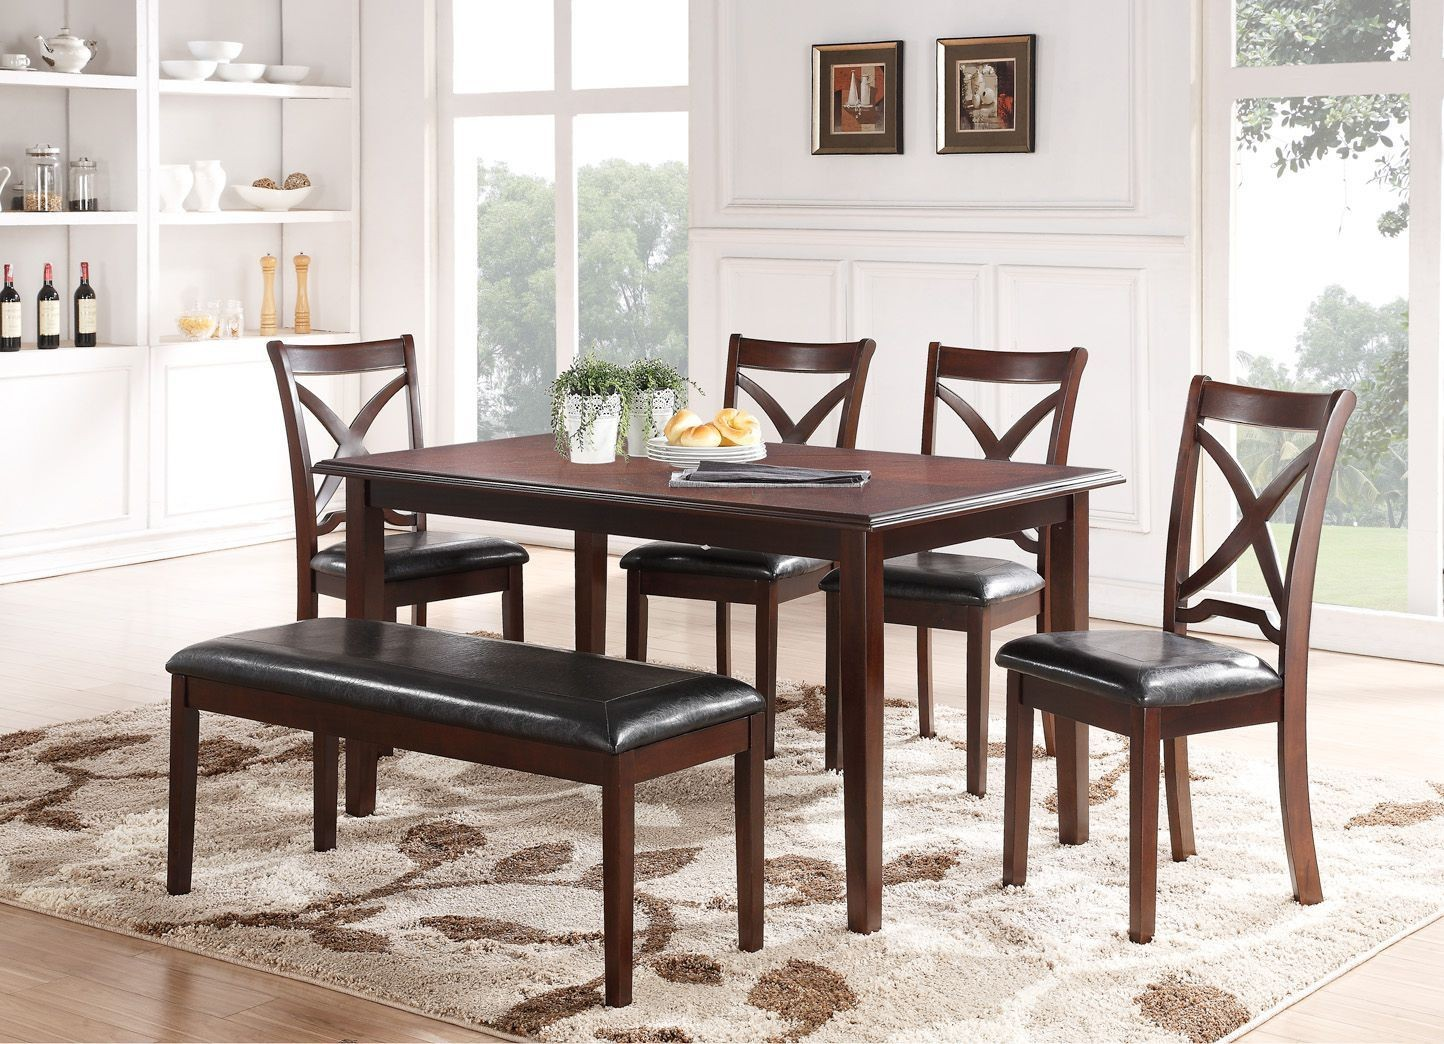 Milo Espresso 6Pc Rectangular Dining Table Set from New  : 40 1435 from colemanfurniture.com size 1444 x 1044 jpeg 406kB